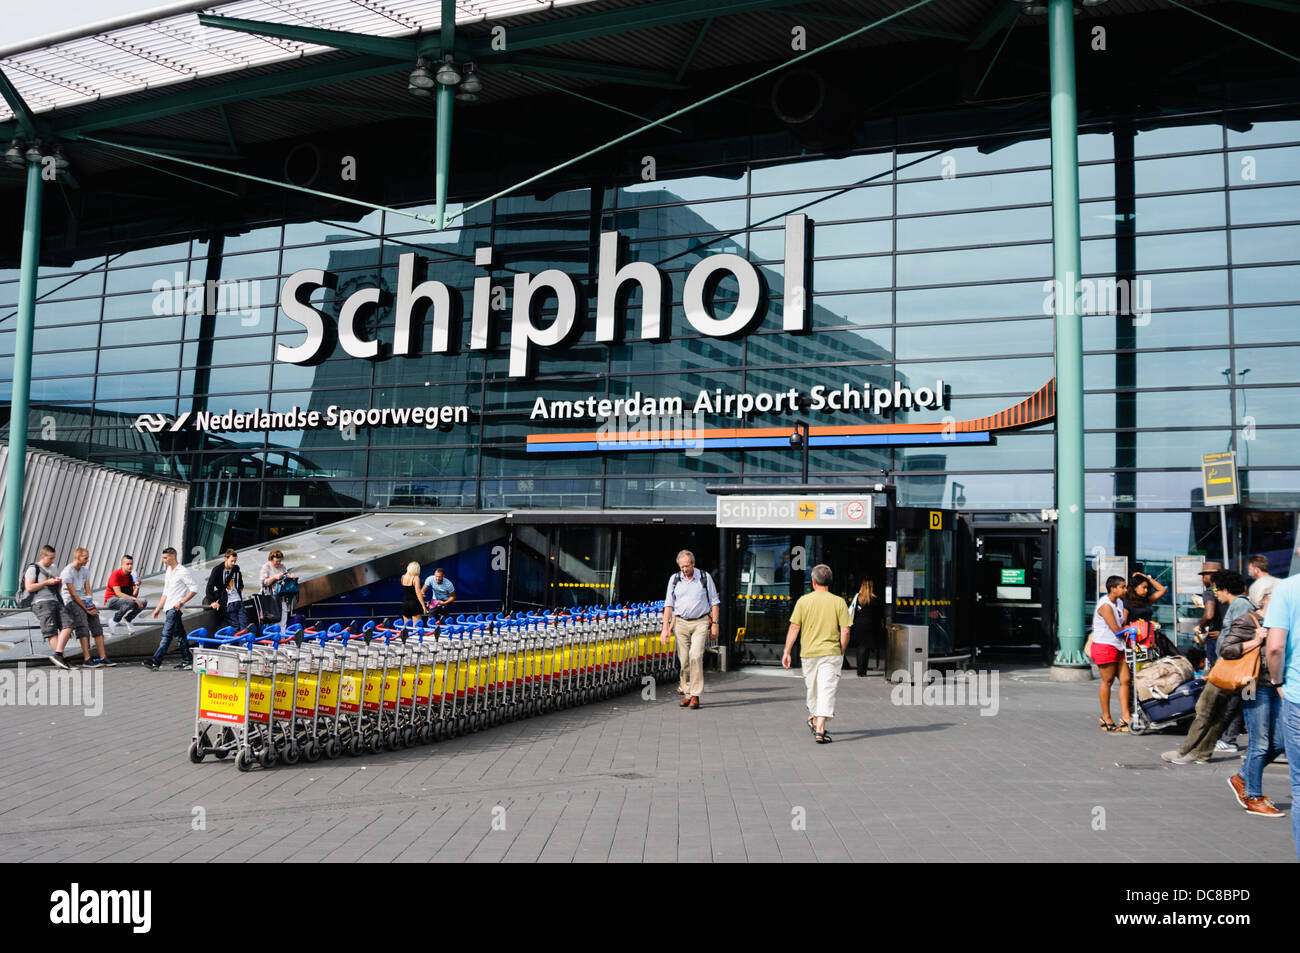 Main entrance to Schiphol airport, Amsterdam - Stock Image